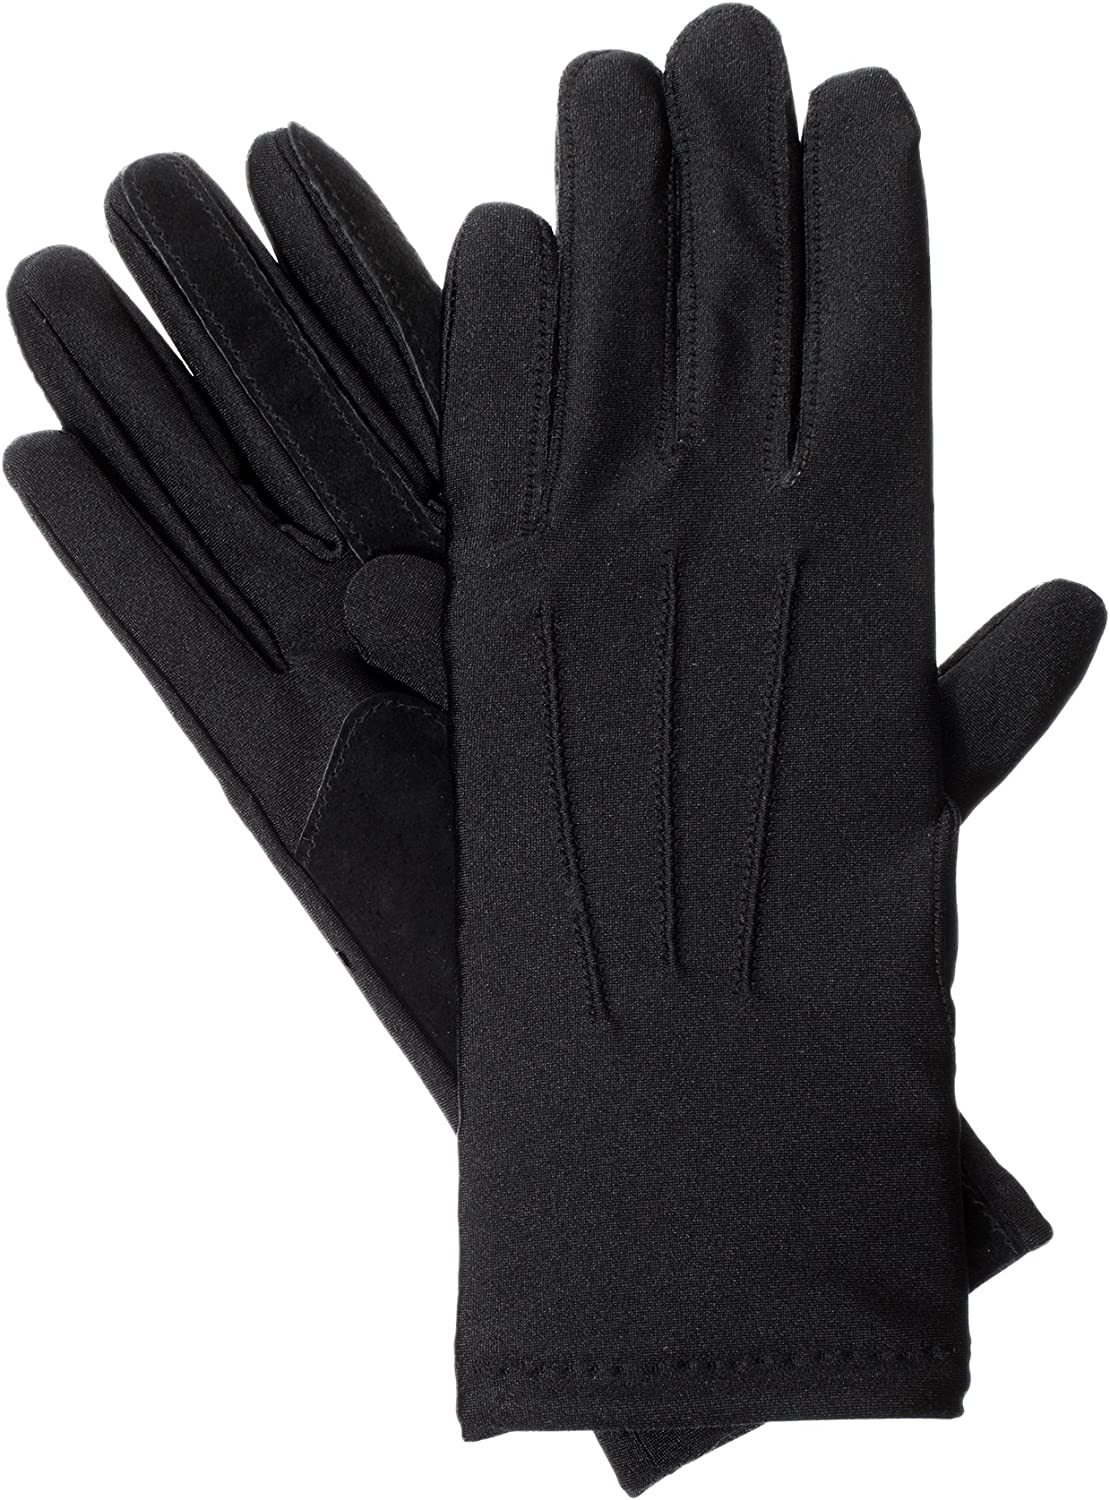 isotoner womens Stretch Classics Fleece Lined Winter Gloves, Black, One Size US at  Women's Clothing store